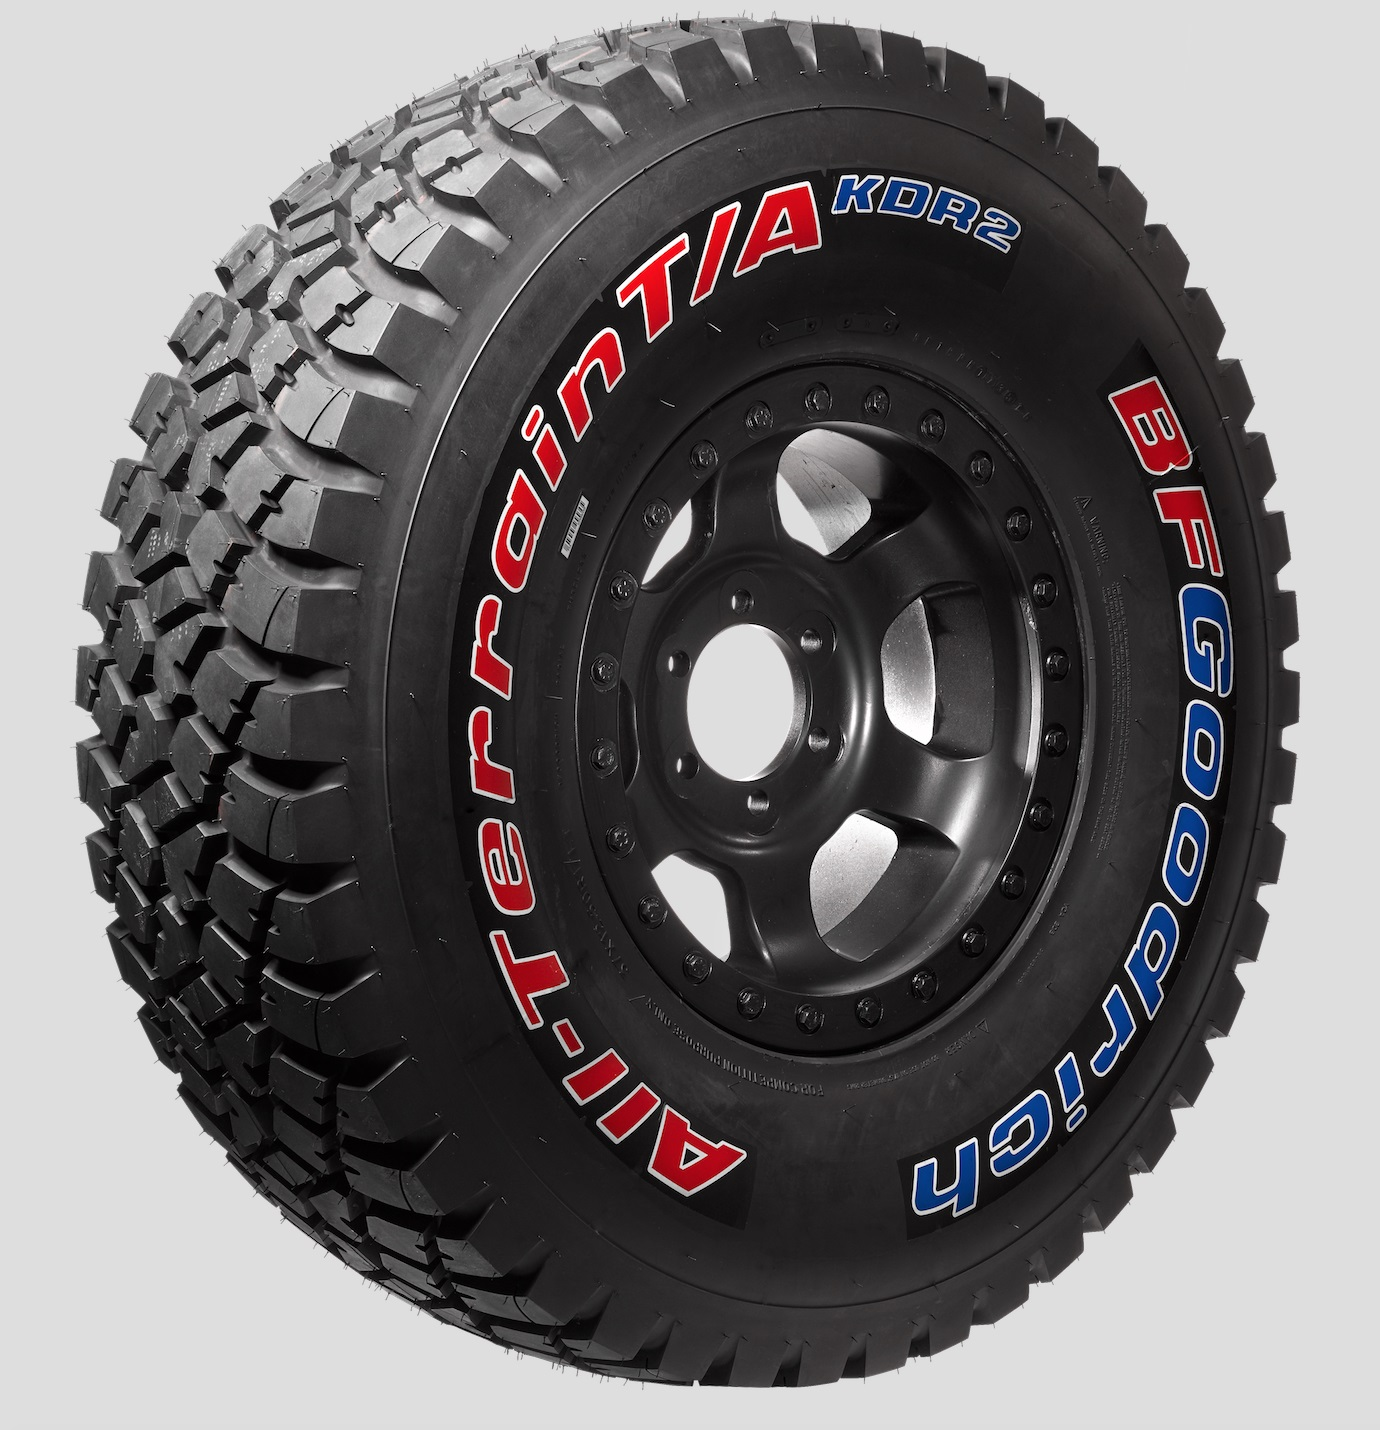 bfgoodrich all terrain t a kdr2 bfgoodrich racing. Black Bedroom Furniture Sets. Home Design Ideas